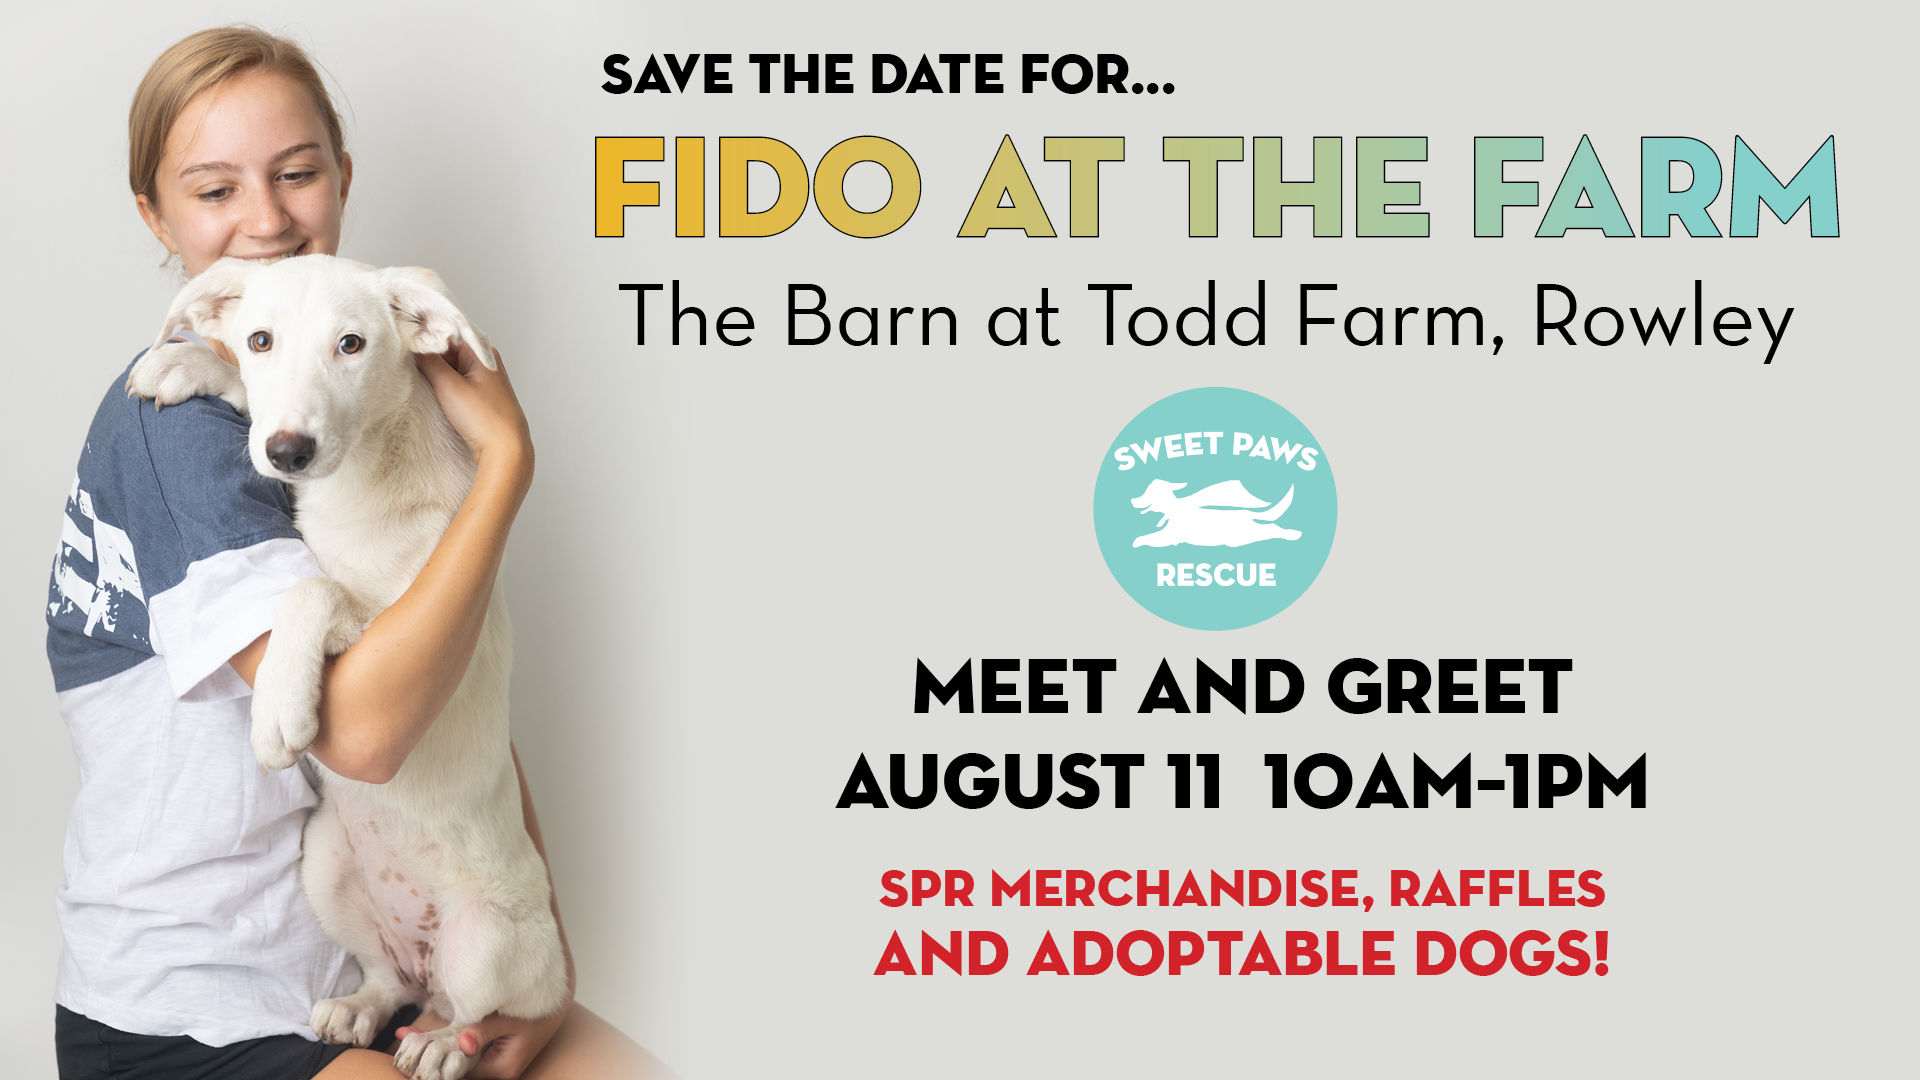 Come meet our available puppies and dogs on August 11th, from 10am - 1pm at The Barn at Todd Farm! We have a transport of dogs arriving just for this event - lots of elbow room - some of our new SPR gear - and great shopping right in the Barn too! Applications can be taken on site - but you can also get pre-approved prior to the meet & greet. Information on SPR's adopting process can be found here: www.sweetpawsrescue.org/adoption-info   ...our new pups look forward to meeting you!